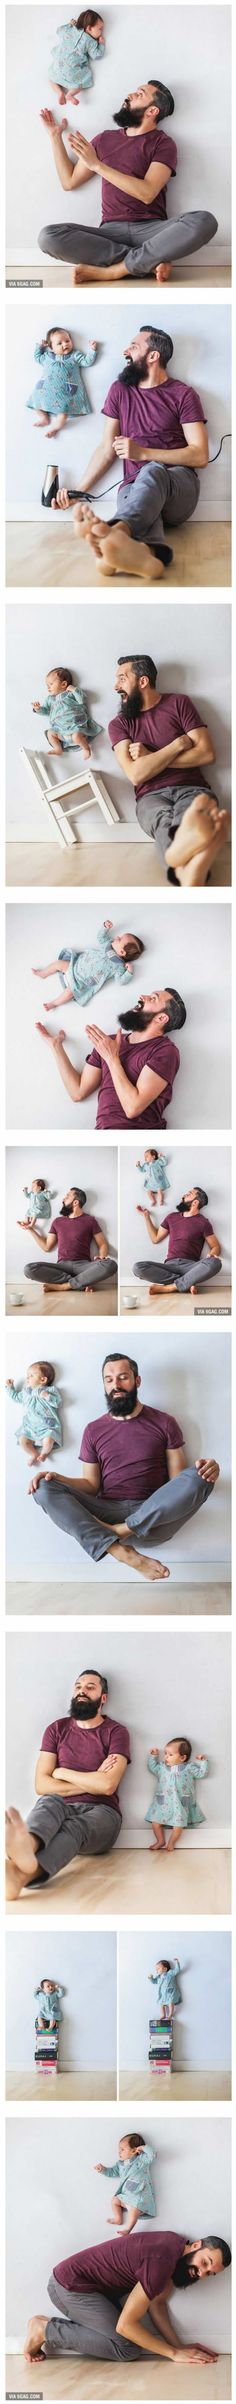 These Cute Pictures Of Dad And His Newborn Daughter Are Created Without Photoshop!